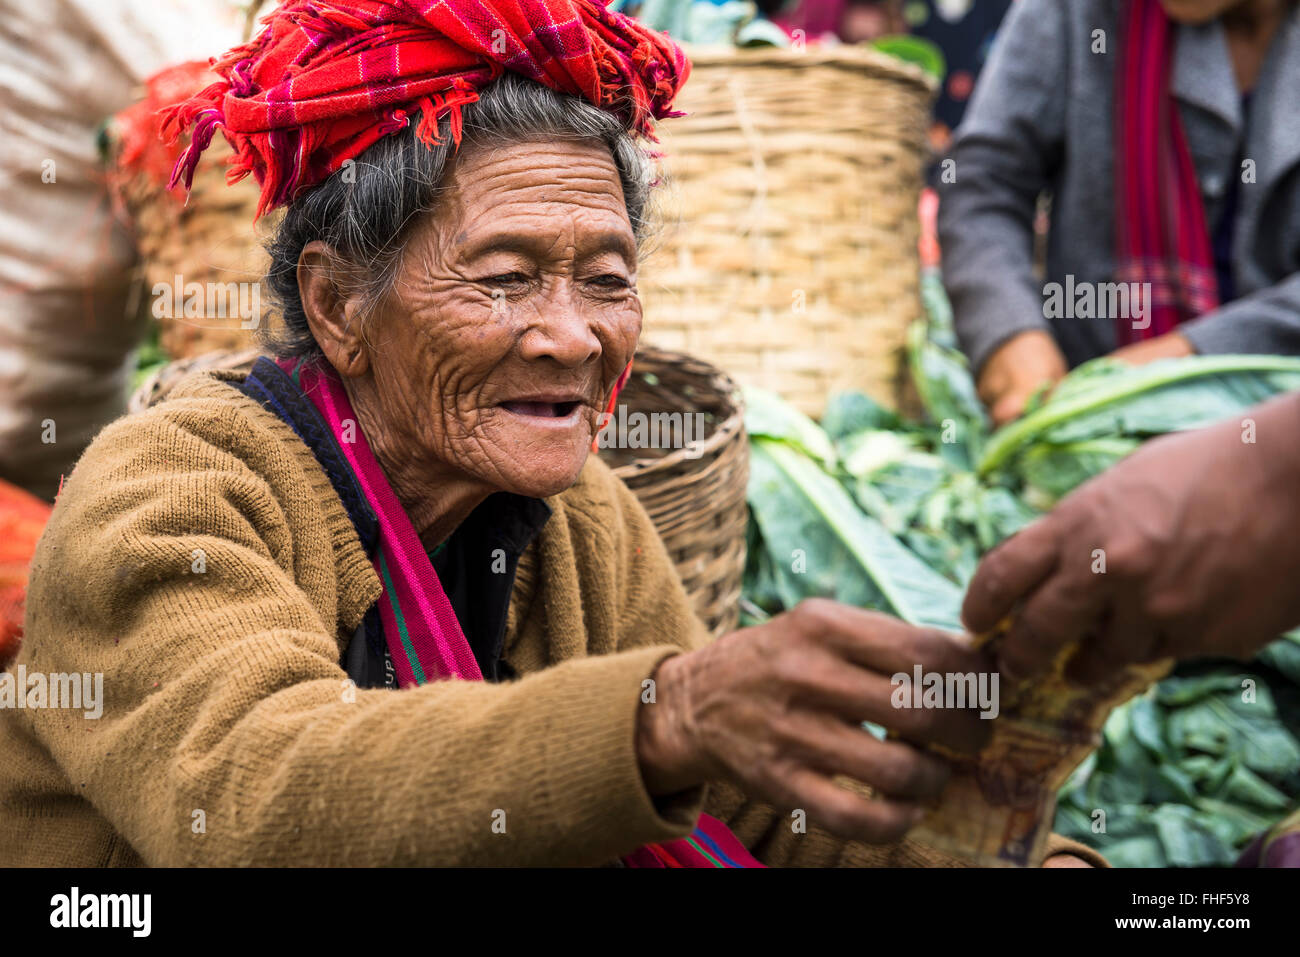 Smiling woman, saleswoman from Pao hilltribe or mountain people, market, Kalaw, Shan State, Myanmar, Burma - Stock Image